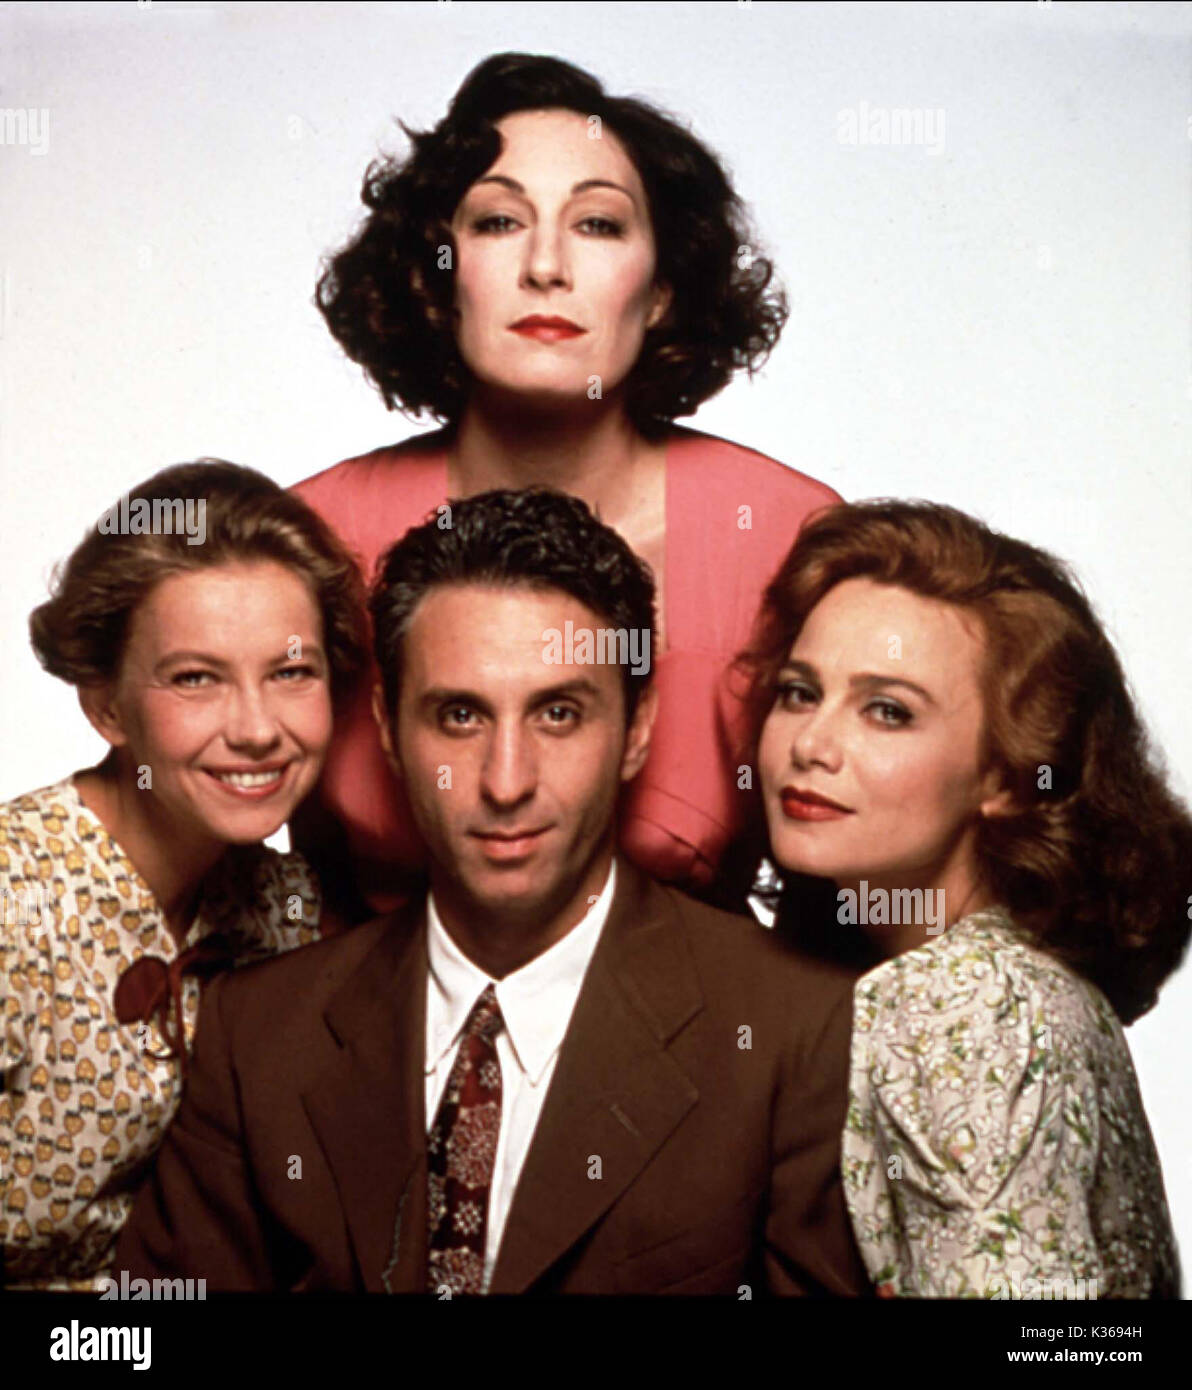 ENEMIES, A LOVE STORY TOP, ANJELICA HUSTON BOTTOM L-R, MARGARET SOPHIE STEIN, RON SILVER, LENA OLIN     Date: 1989 - Stock Image